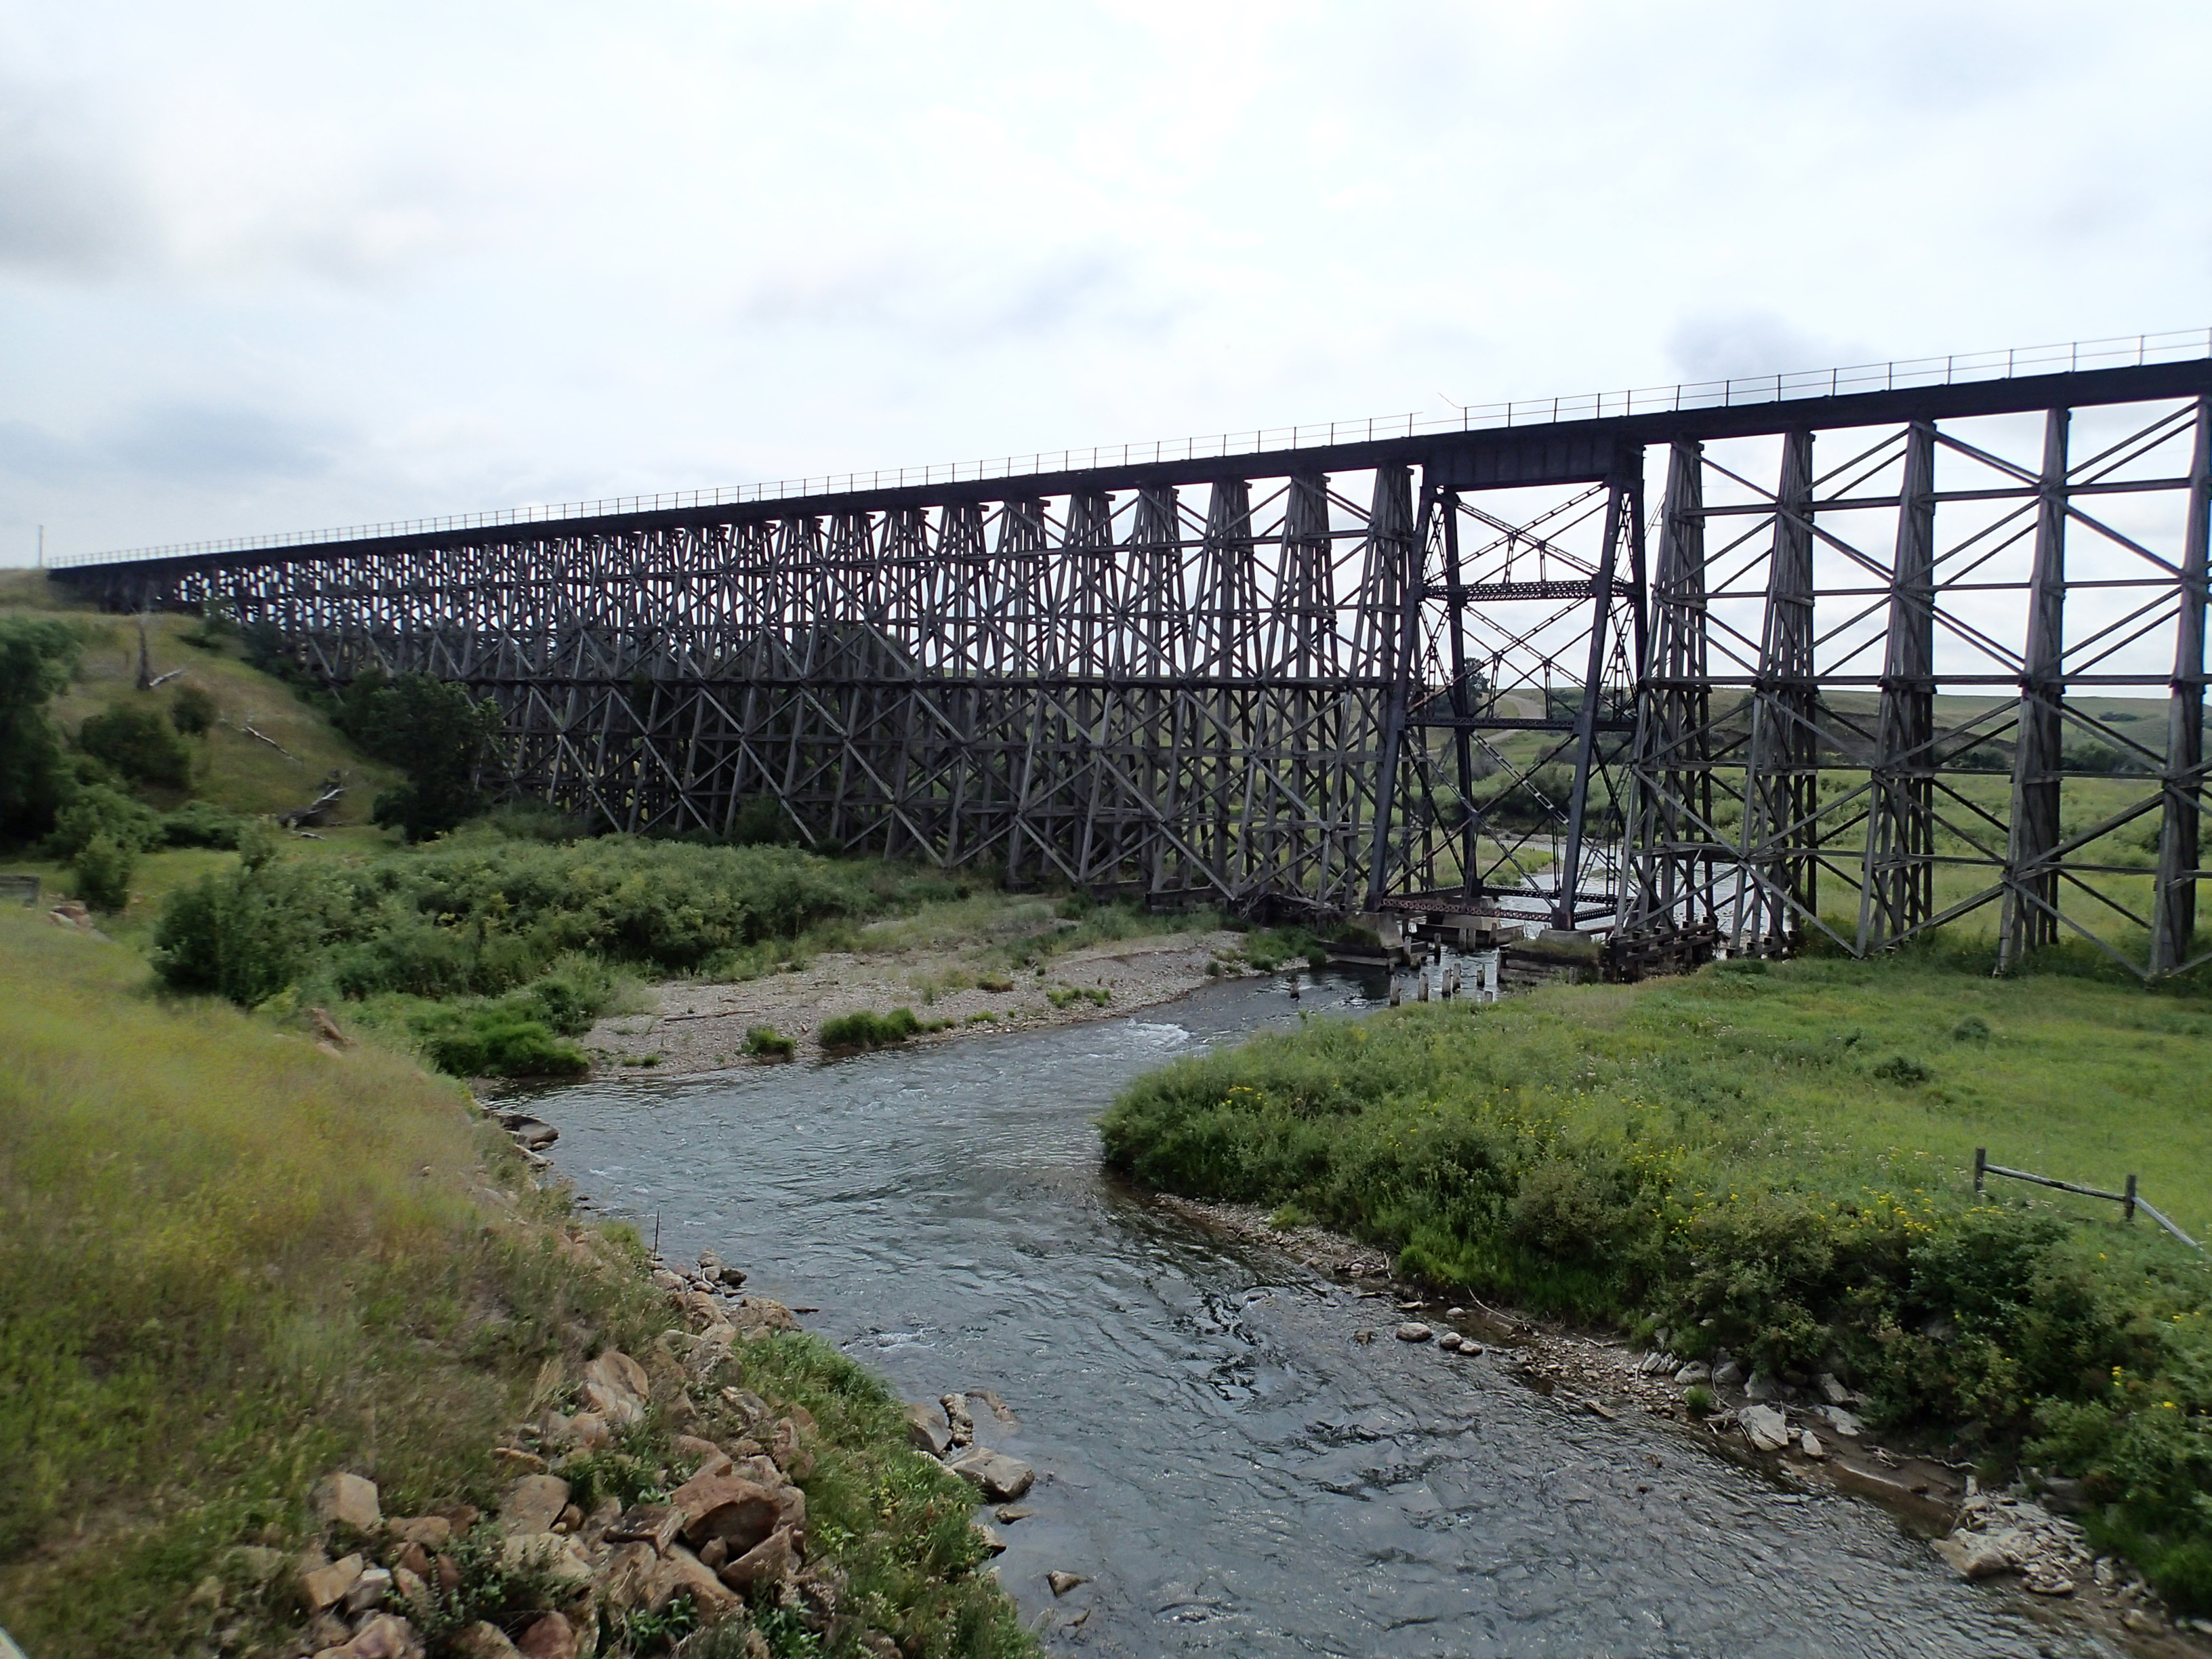 Montana fergus county grass range - Great Northern And Milwaukee Road Spring Creek Trestle At Mile 12 As The Town Of Lewistown Grew